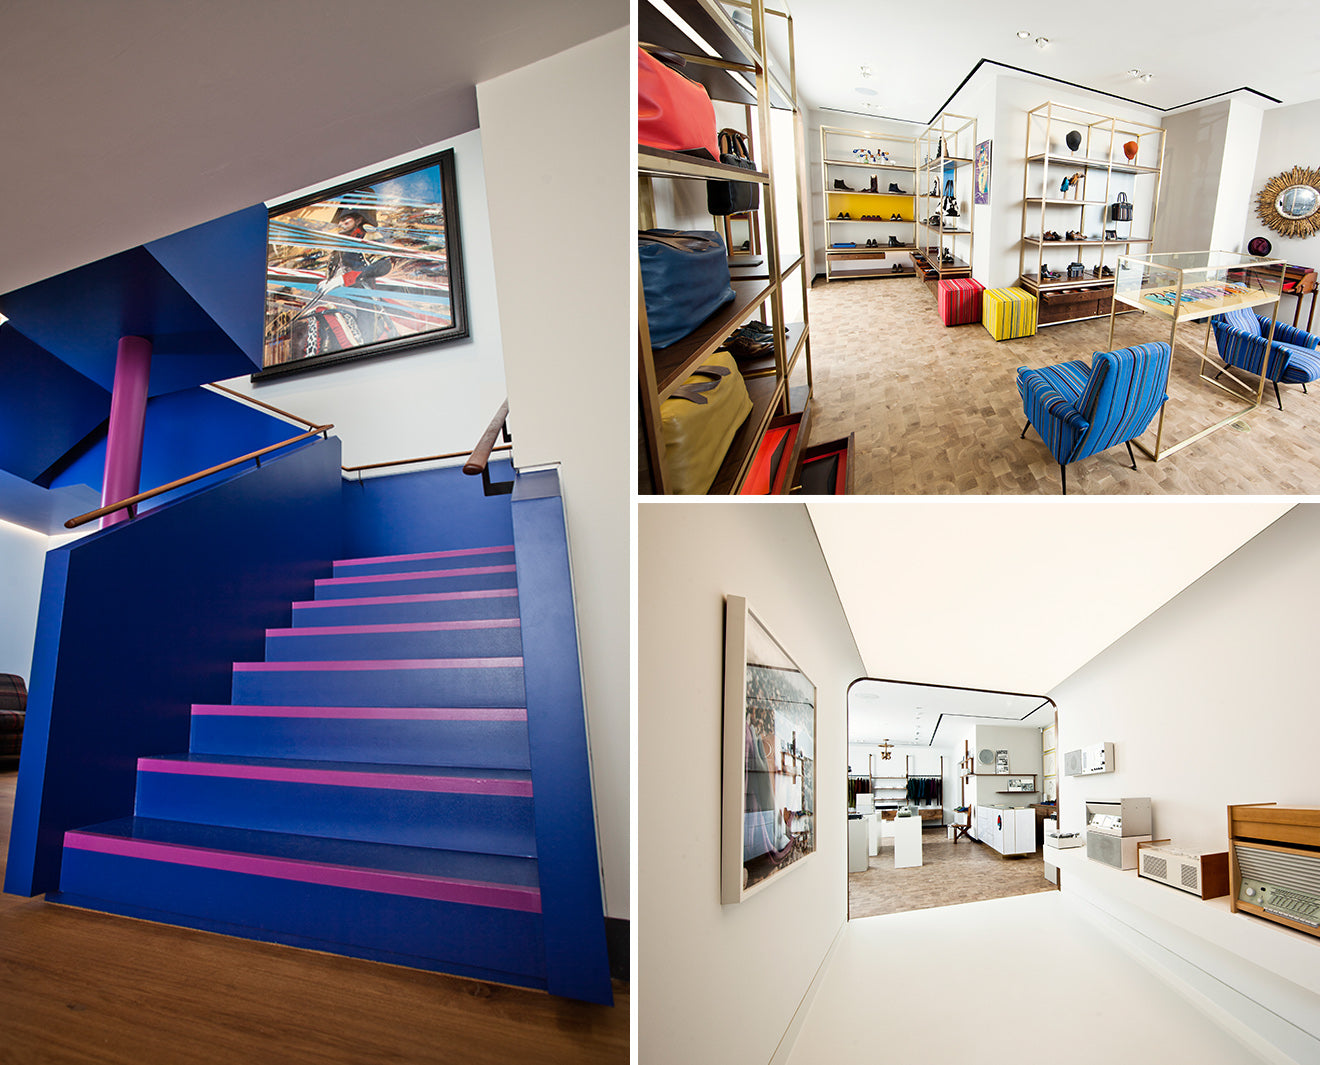 Bright Blue stairs at Paul Smith store in London